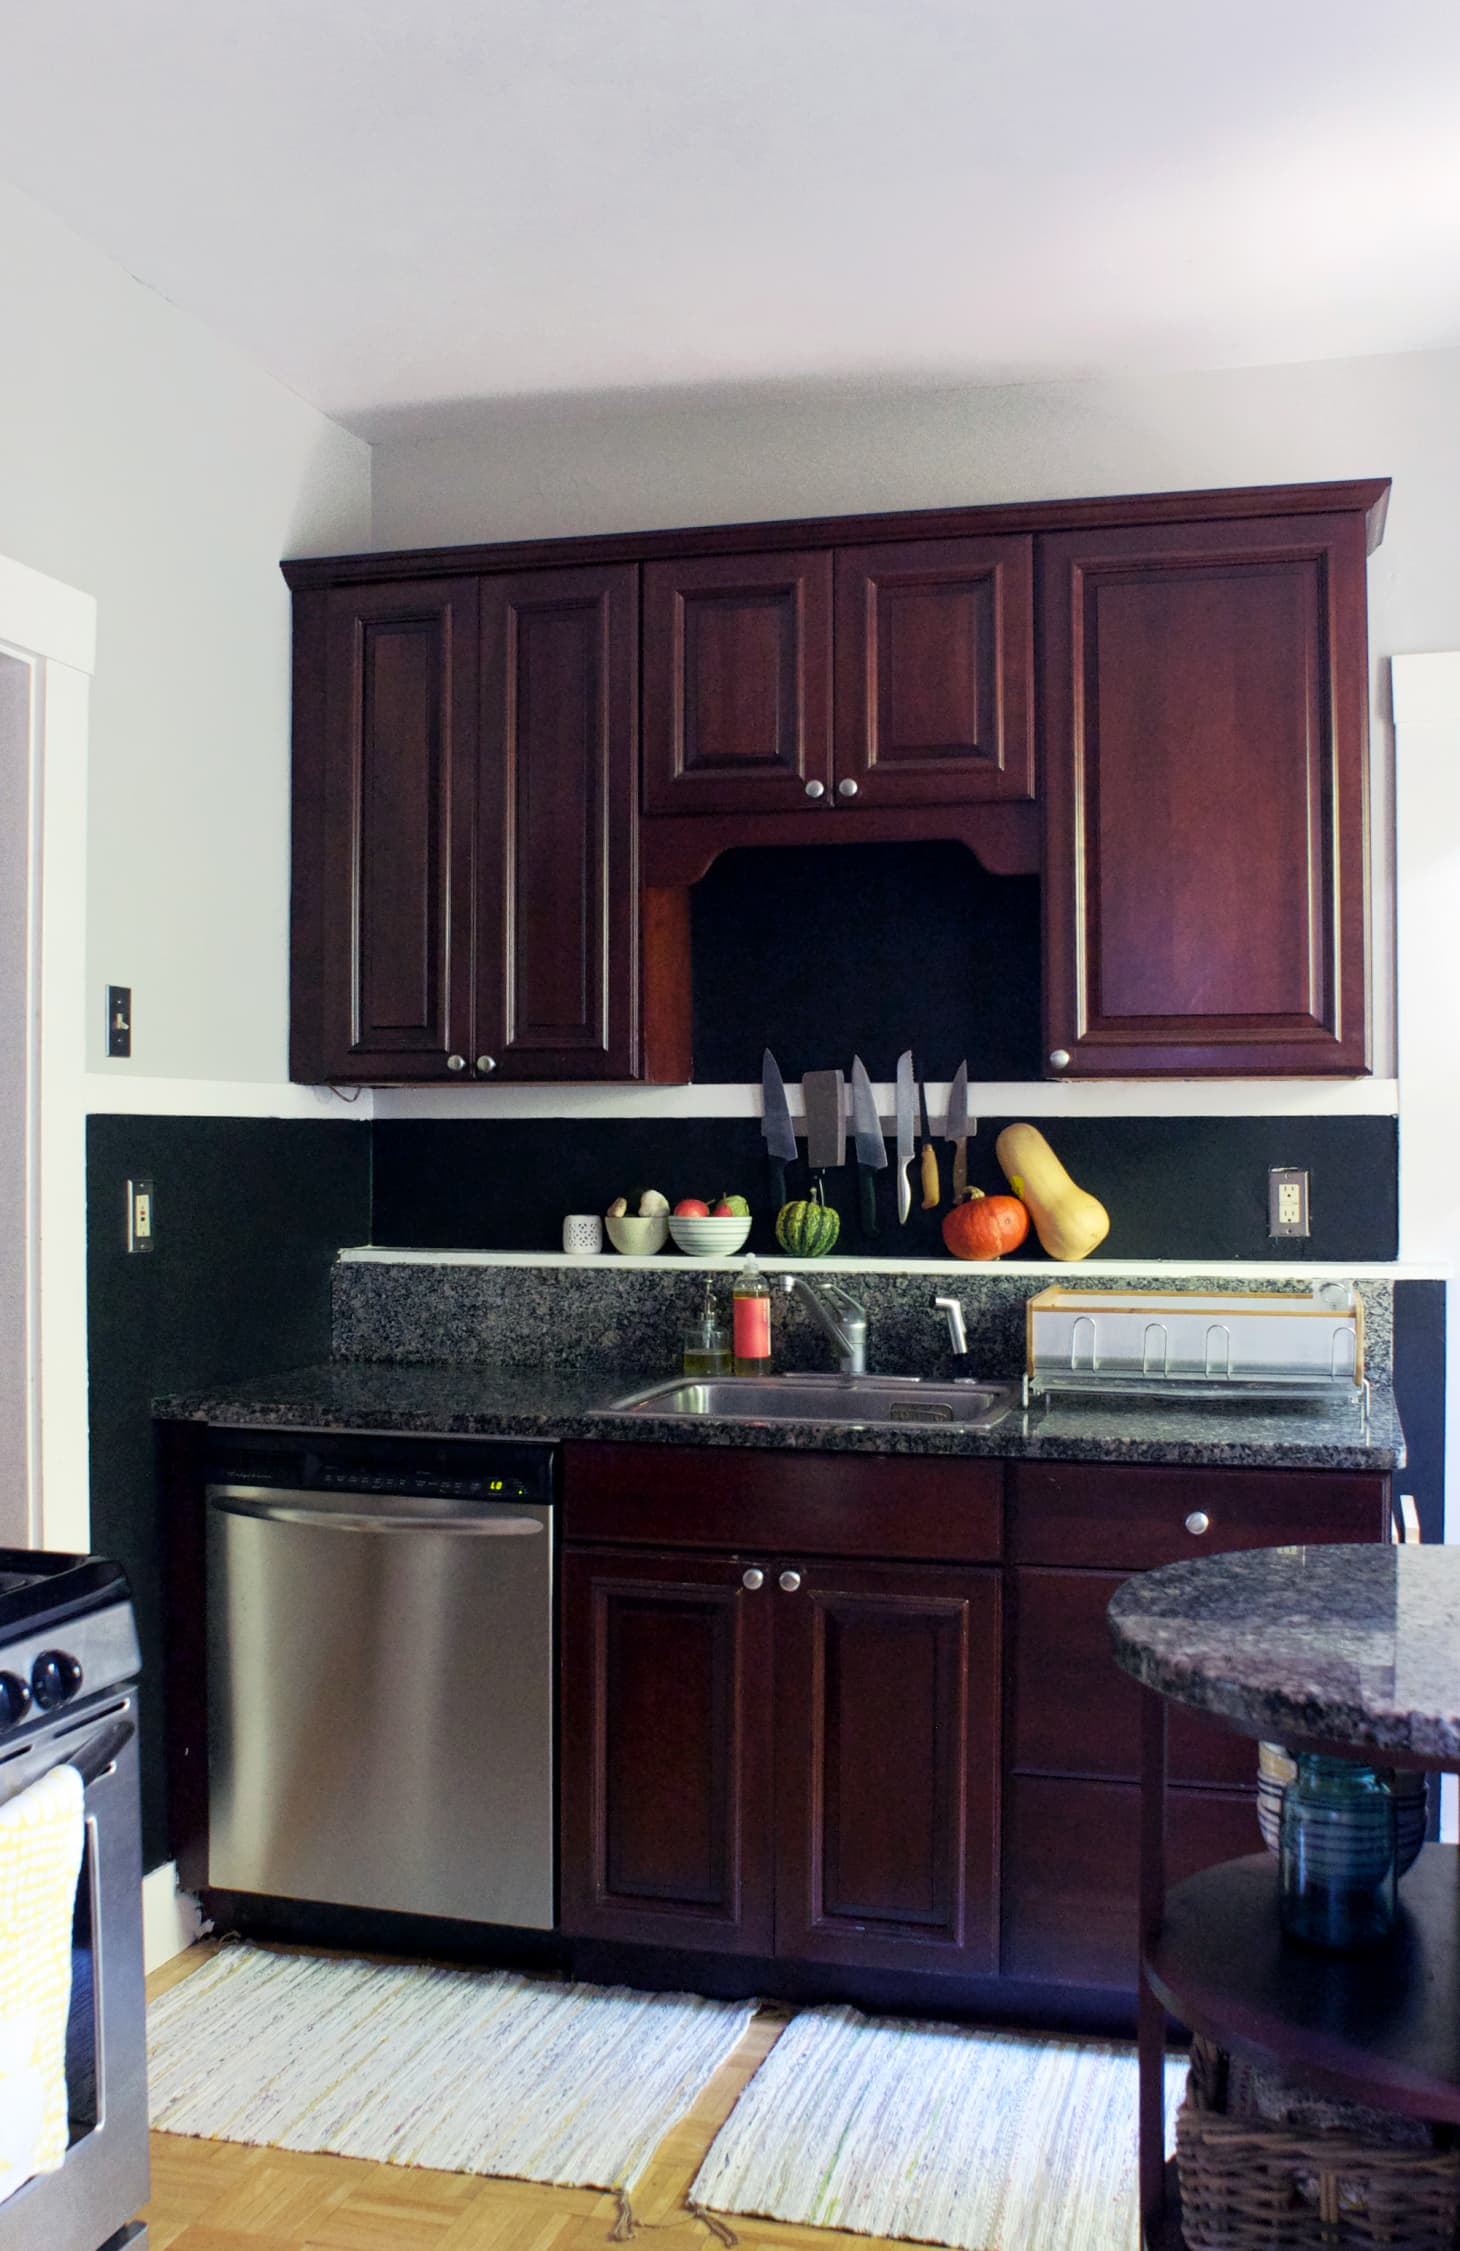 How I Repainted My Rental Kitchen and Made Peace With the ...